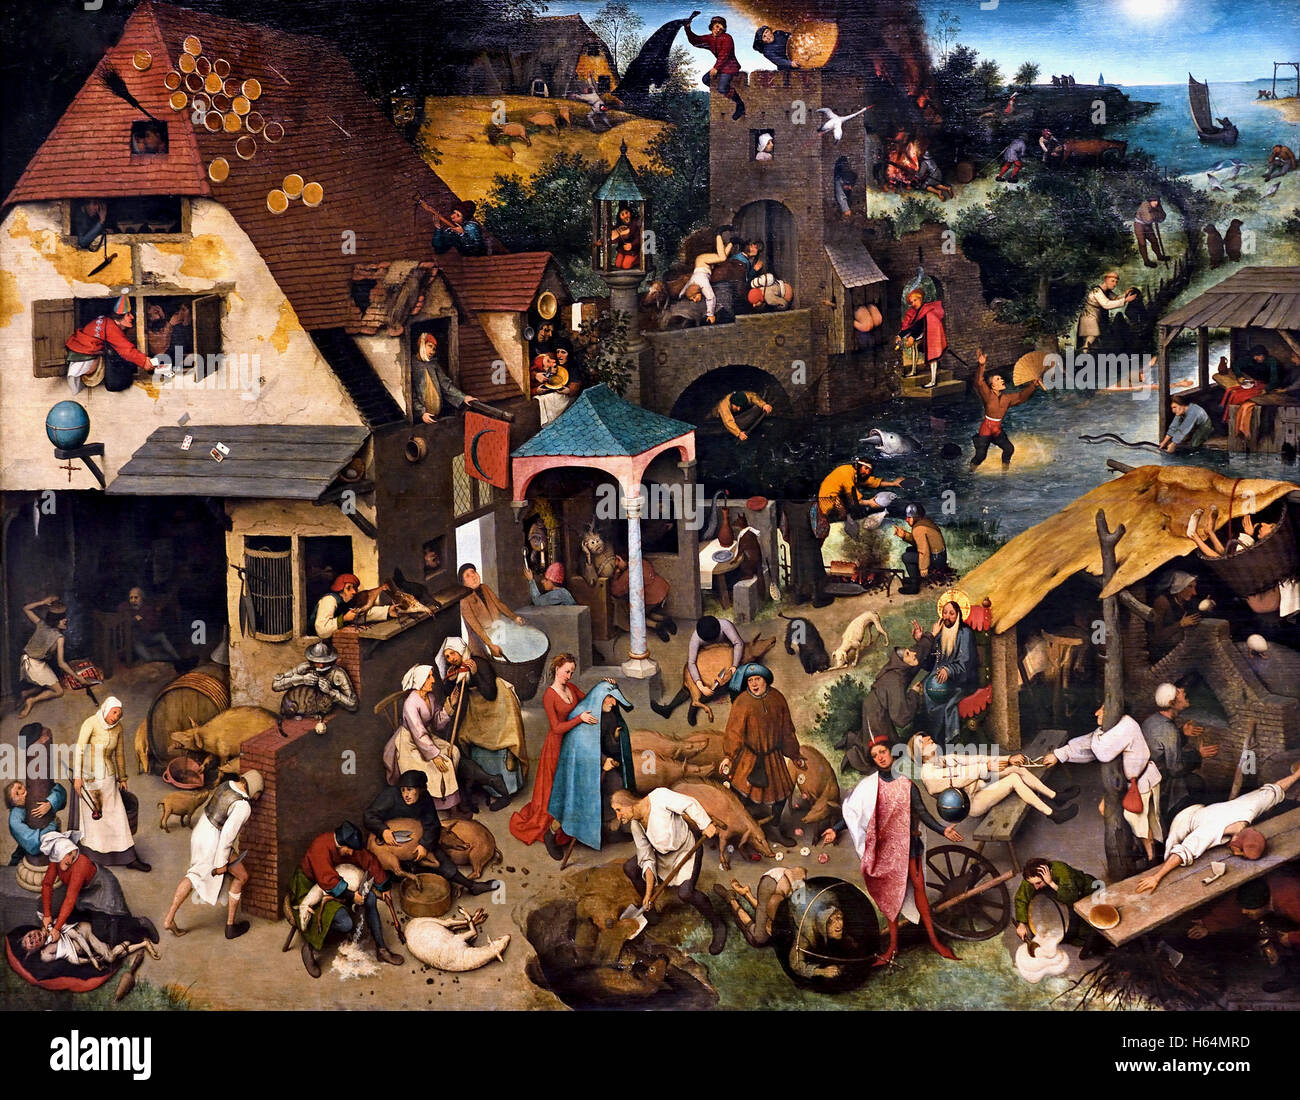 The Dutch proverbs 1559 Pieter Brueghel ( Bruegel ) the Elder  Breda1525 - 1569 Brussels Dutch Flemish Belgian Belgium - Stock Image